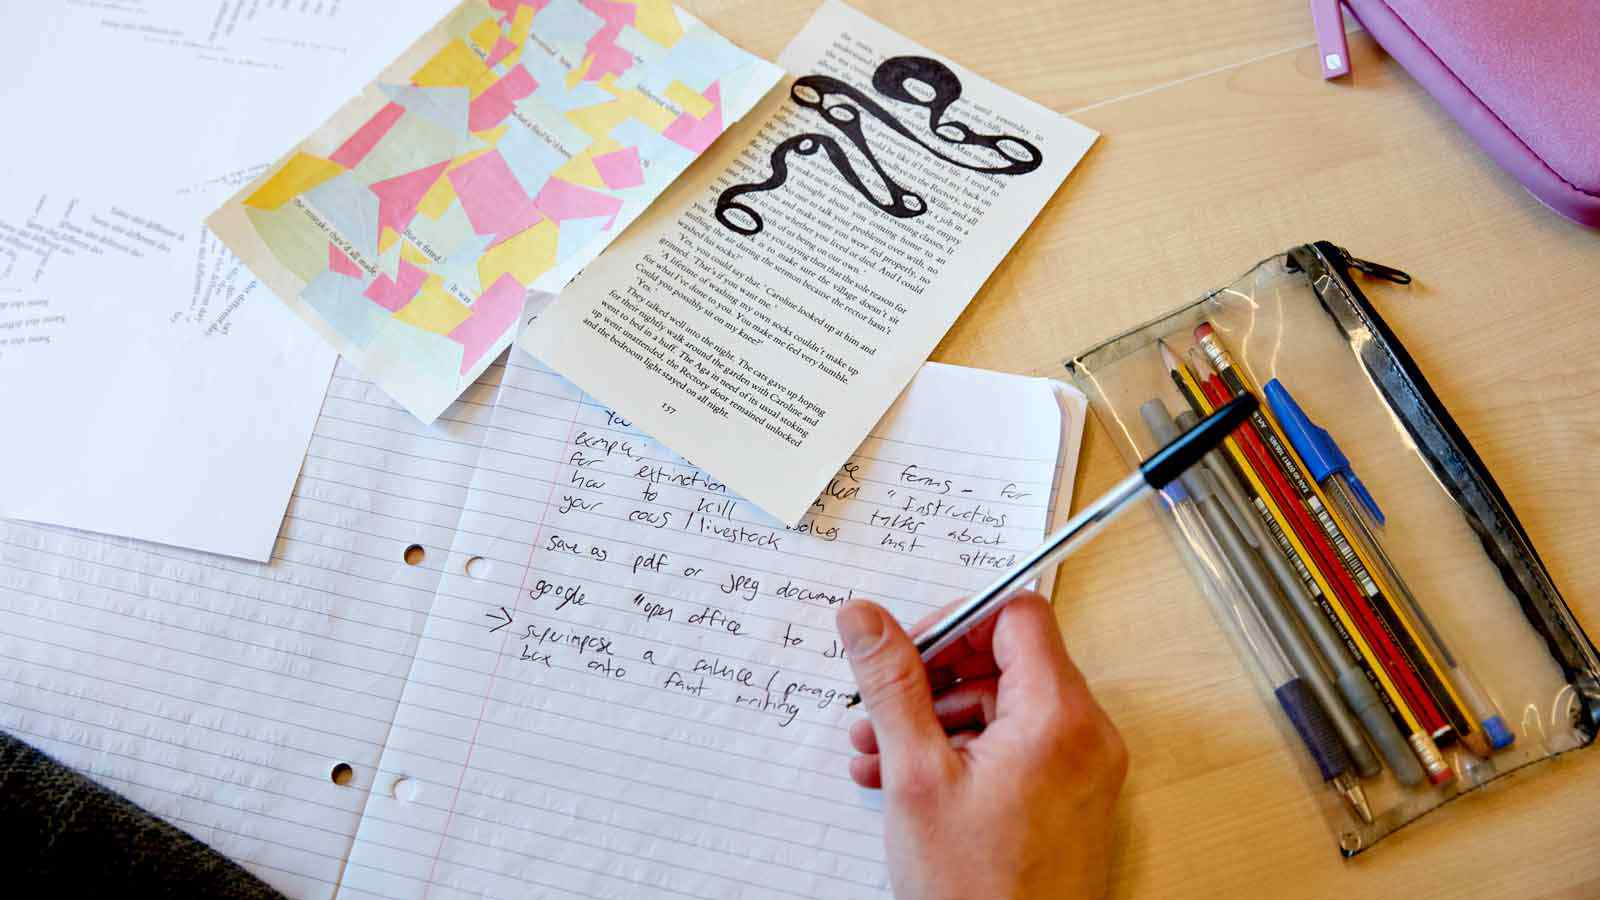 Creative writing activities being used as a prompt for writing